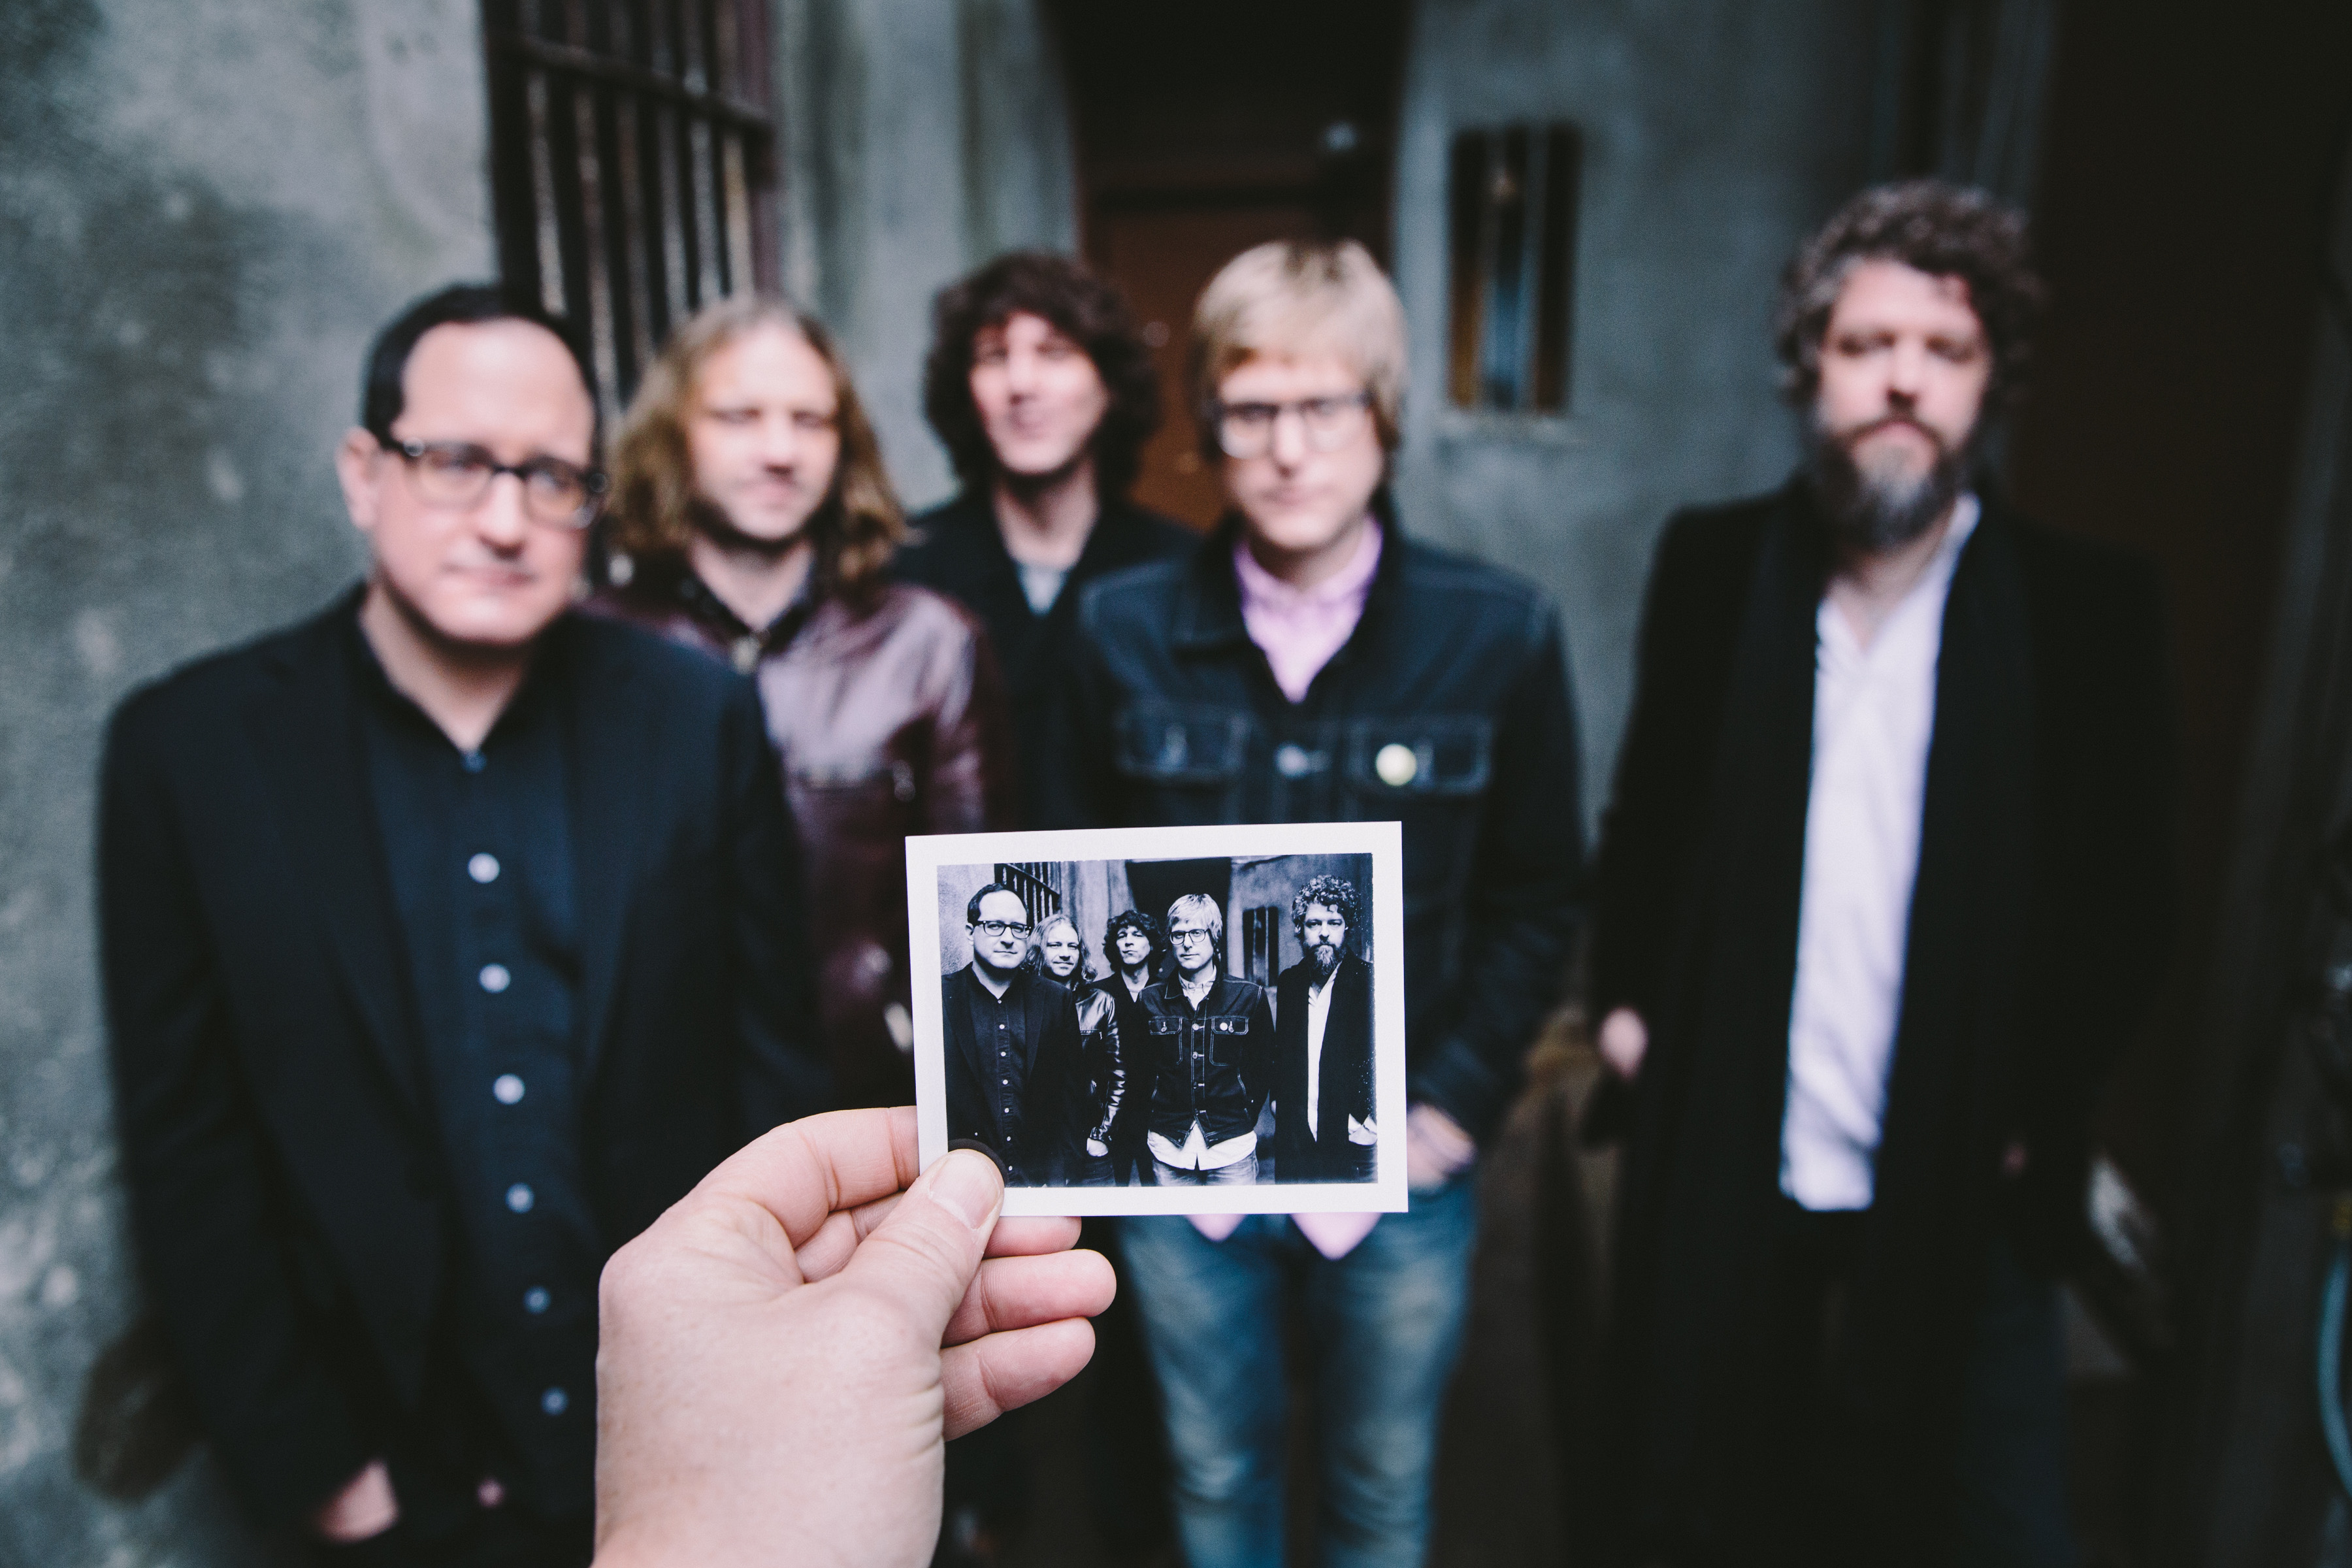 The Hold Steady live at Bush Hall review: We had a massive night, every song was right